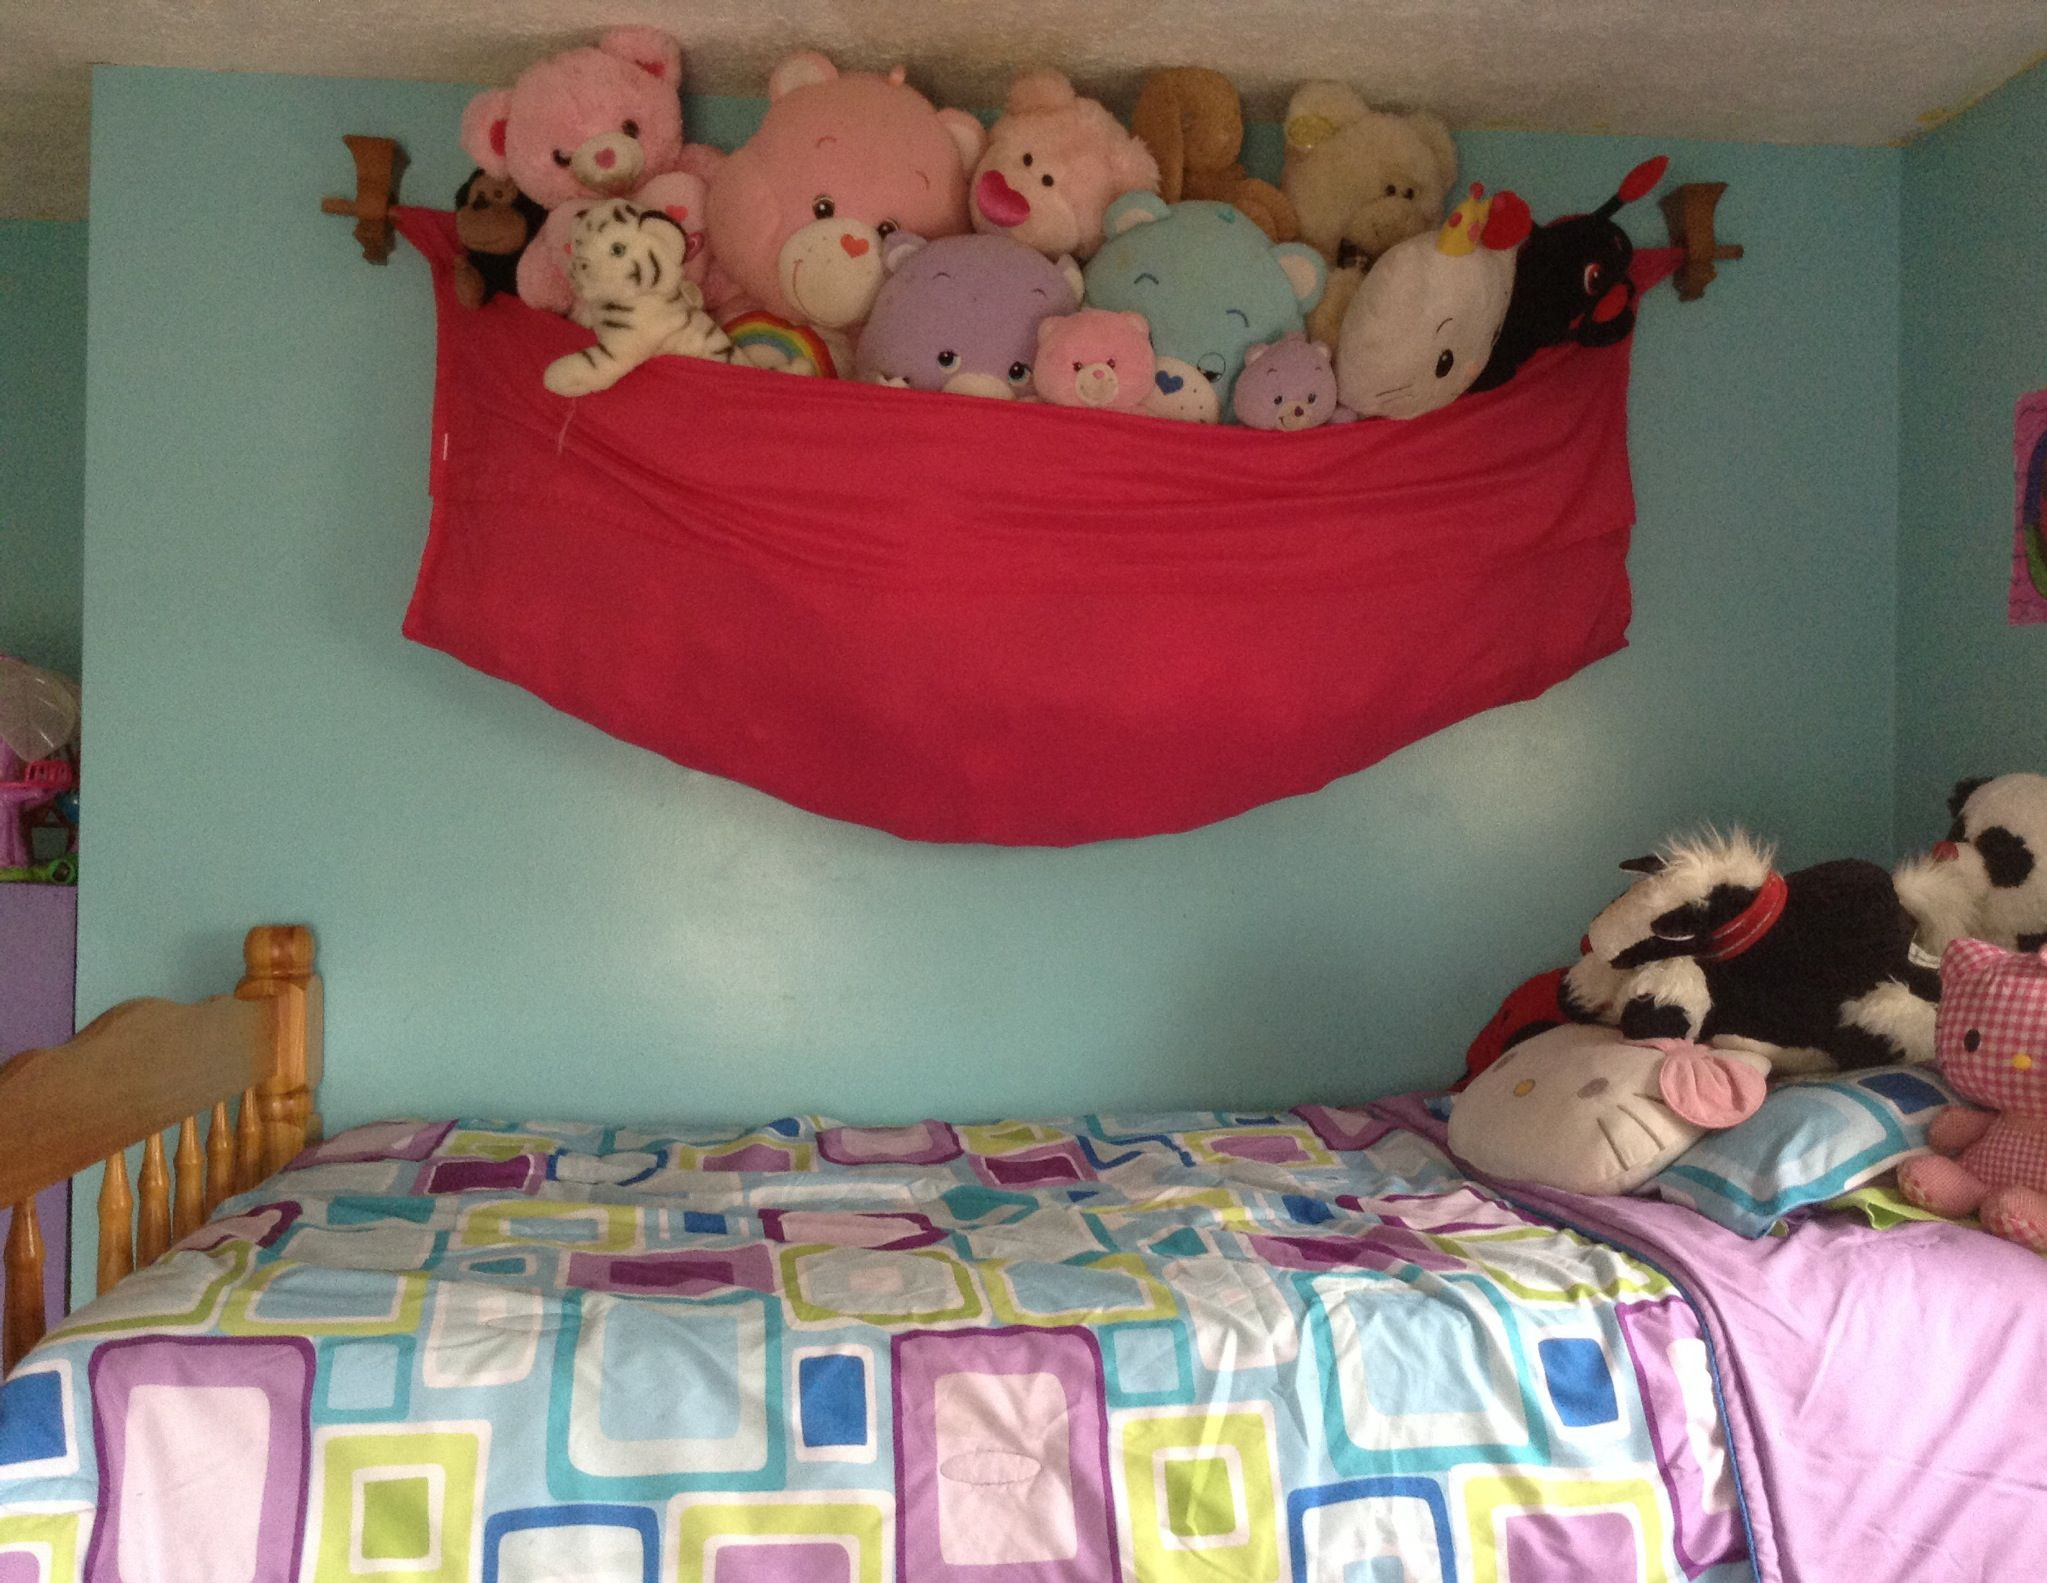 Sheet And Curtain Rod Used For Stuffed Animal Storage